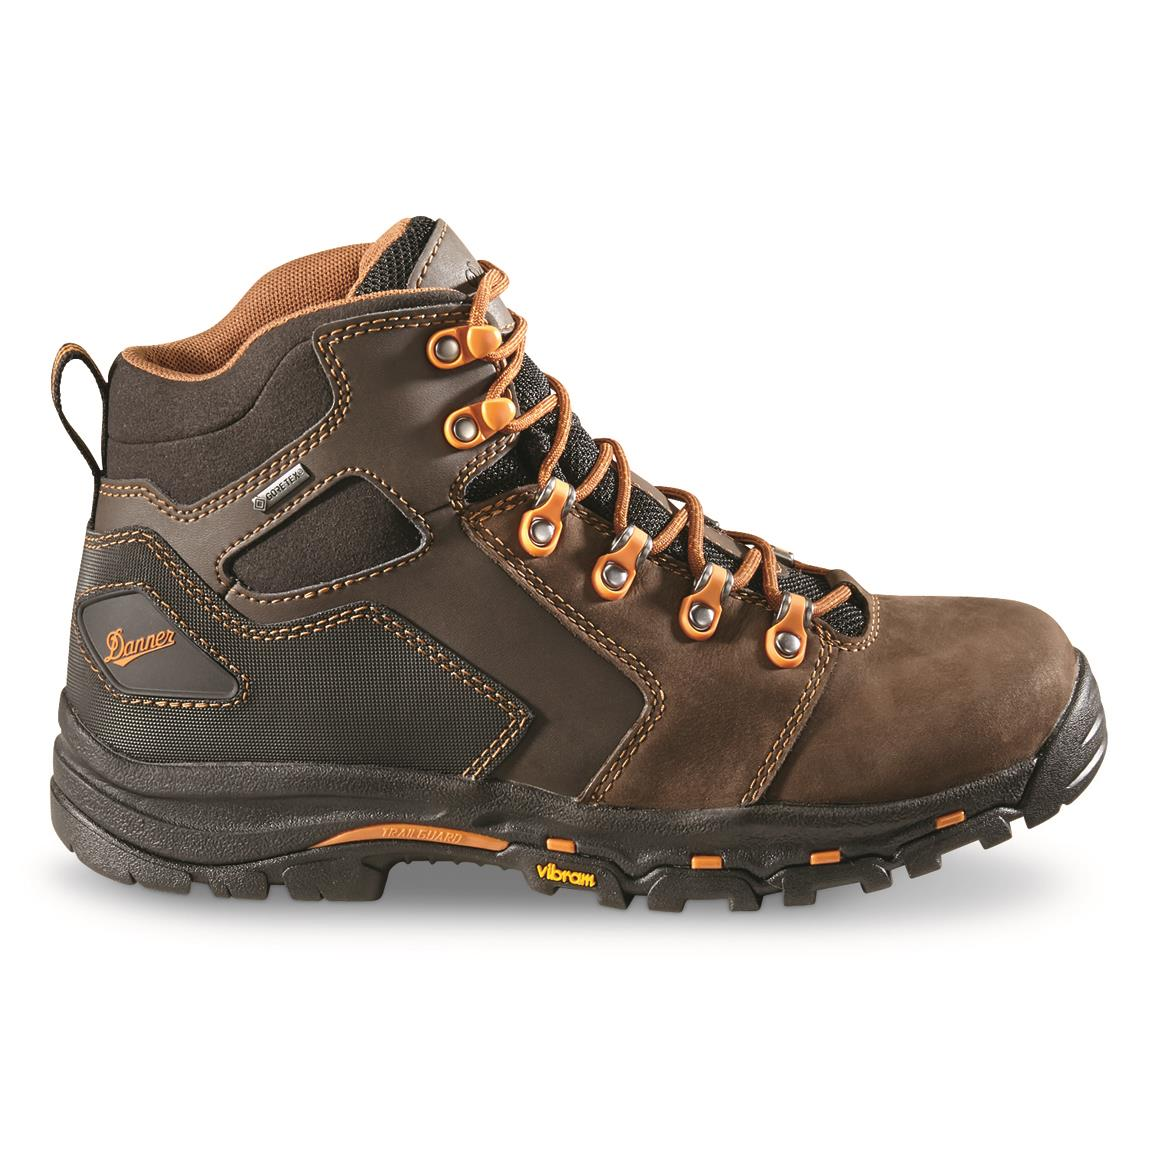 dd960fd8e0b Danner Men's Vicious Waterproof 4.5